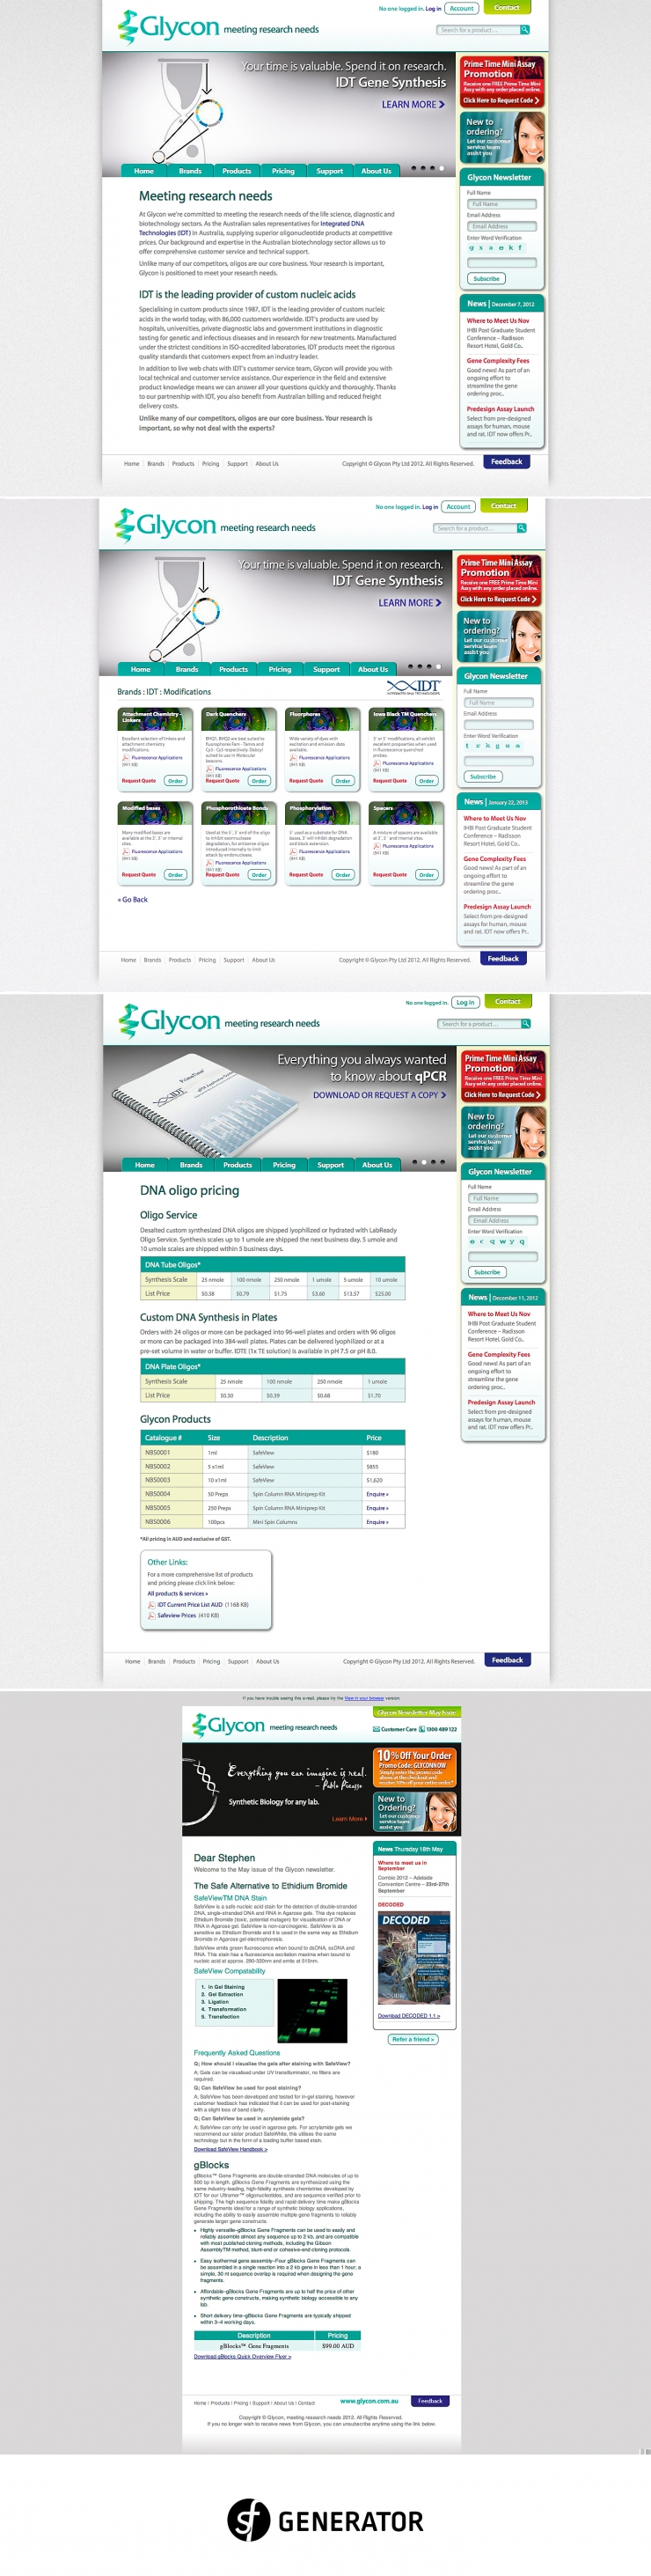 Web design and development of the glycon website and email template web design and development of the glycon website and email template adobe business catalyst was used as the platform to manage client relationships and cheaphphosting Image collections